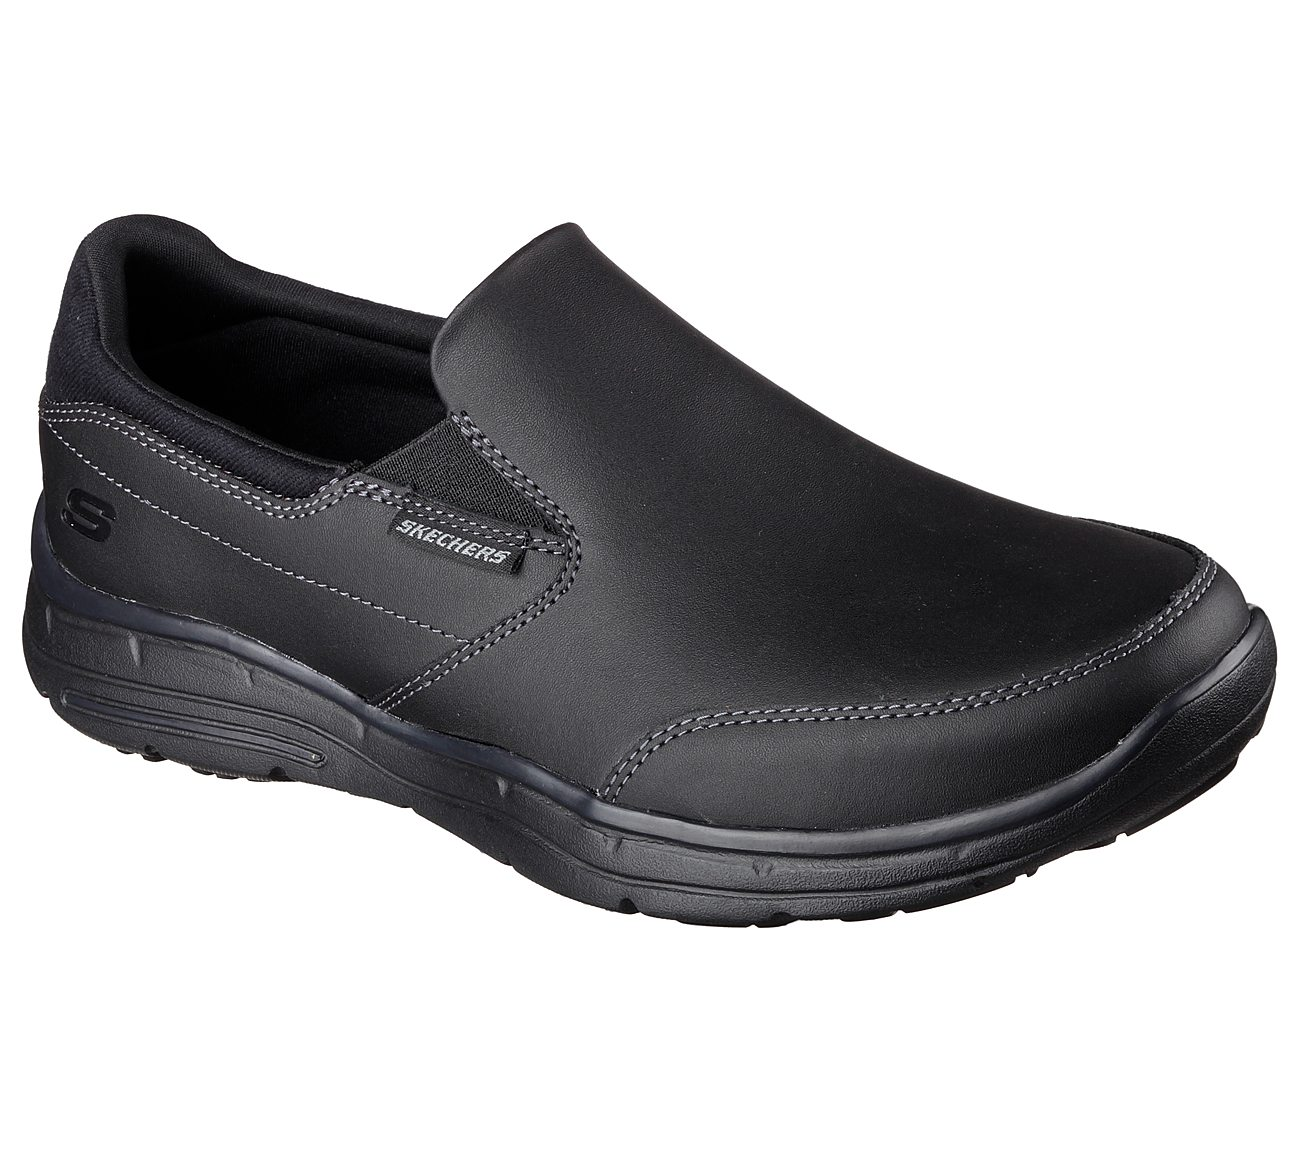 skechers elastic shoes, Skechers Casual, Sport & Dress Shoes